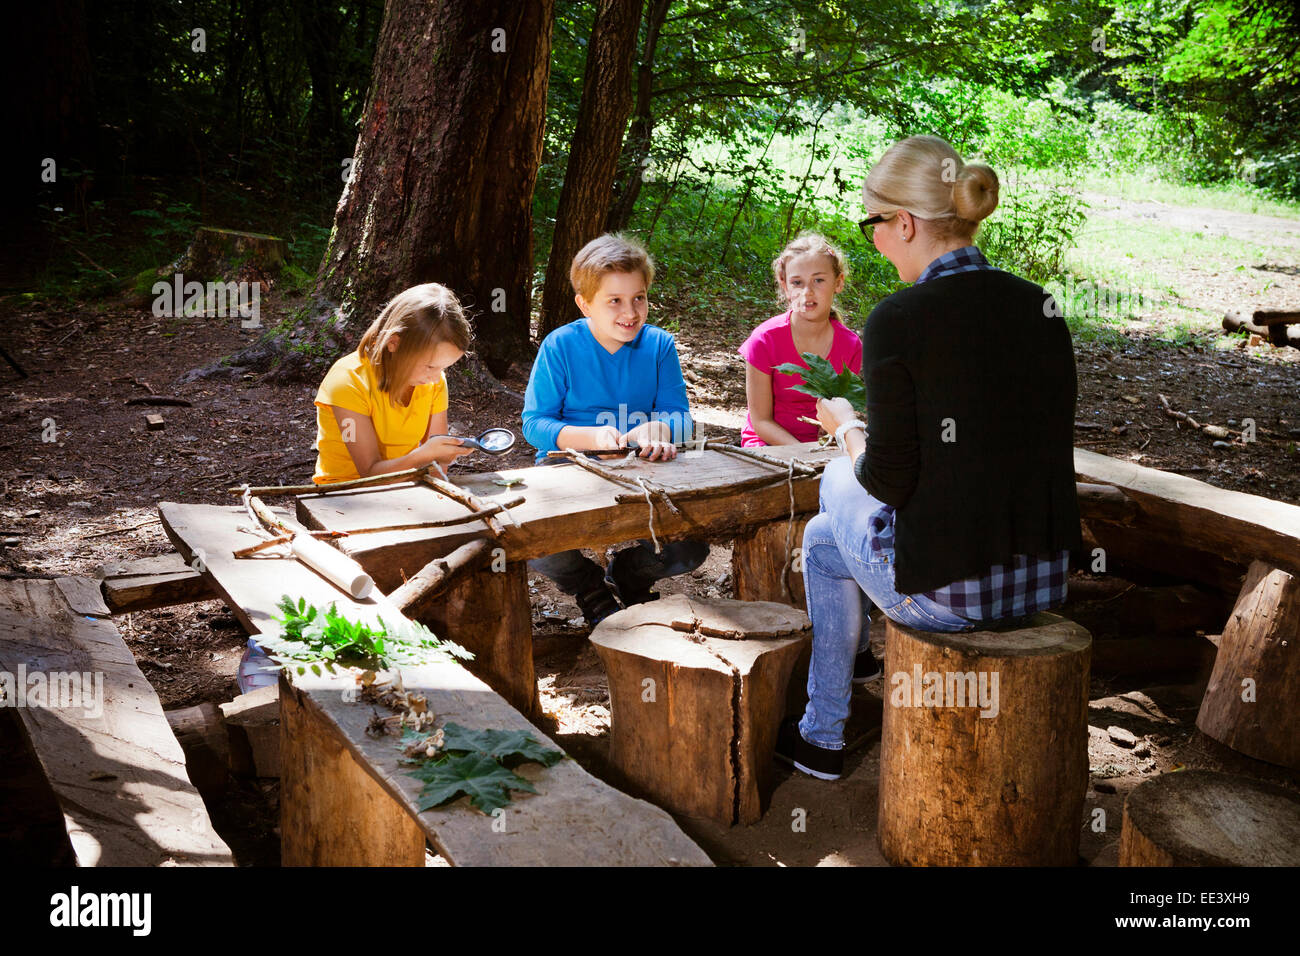 Children and teacher crafting in forest camp, Munich, Bavaria, Germany - Stock Image